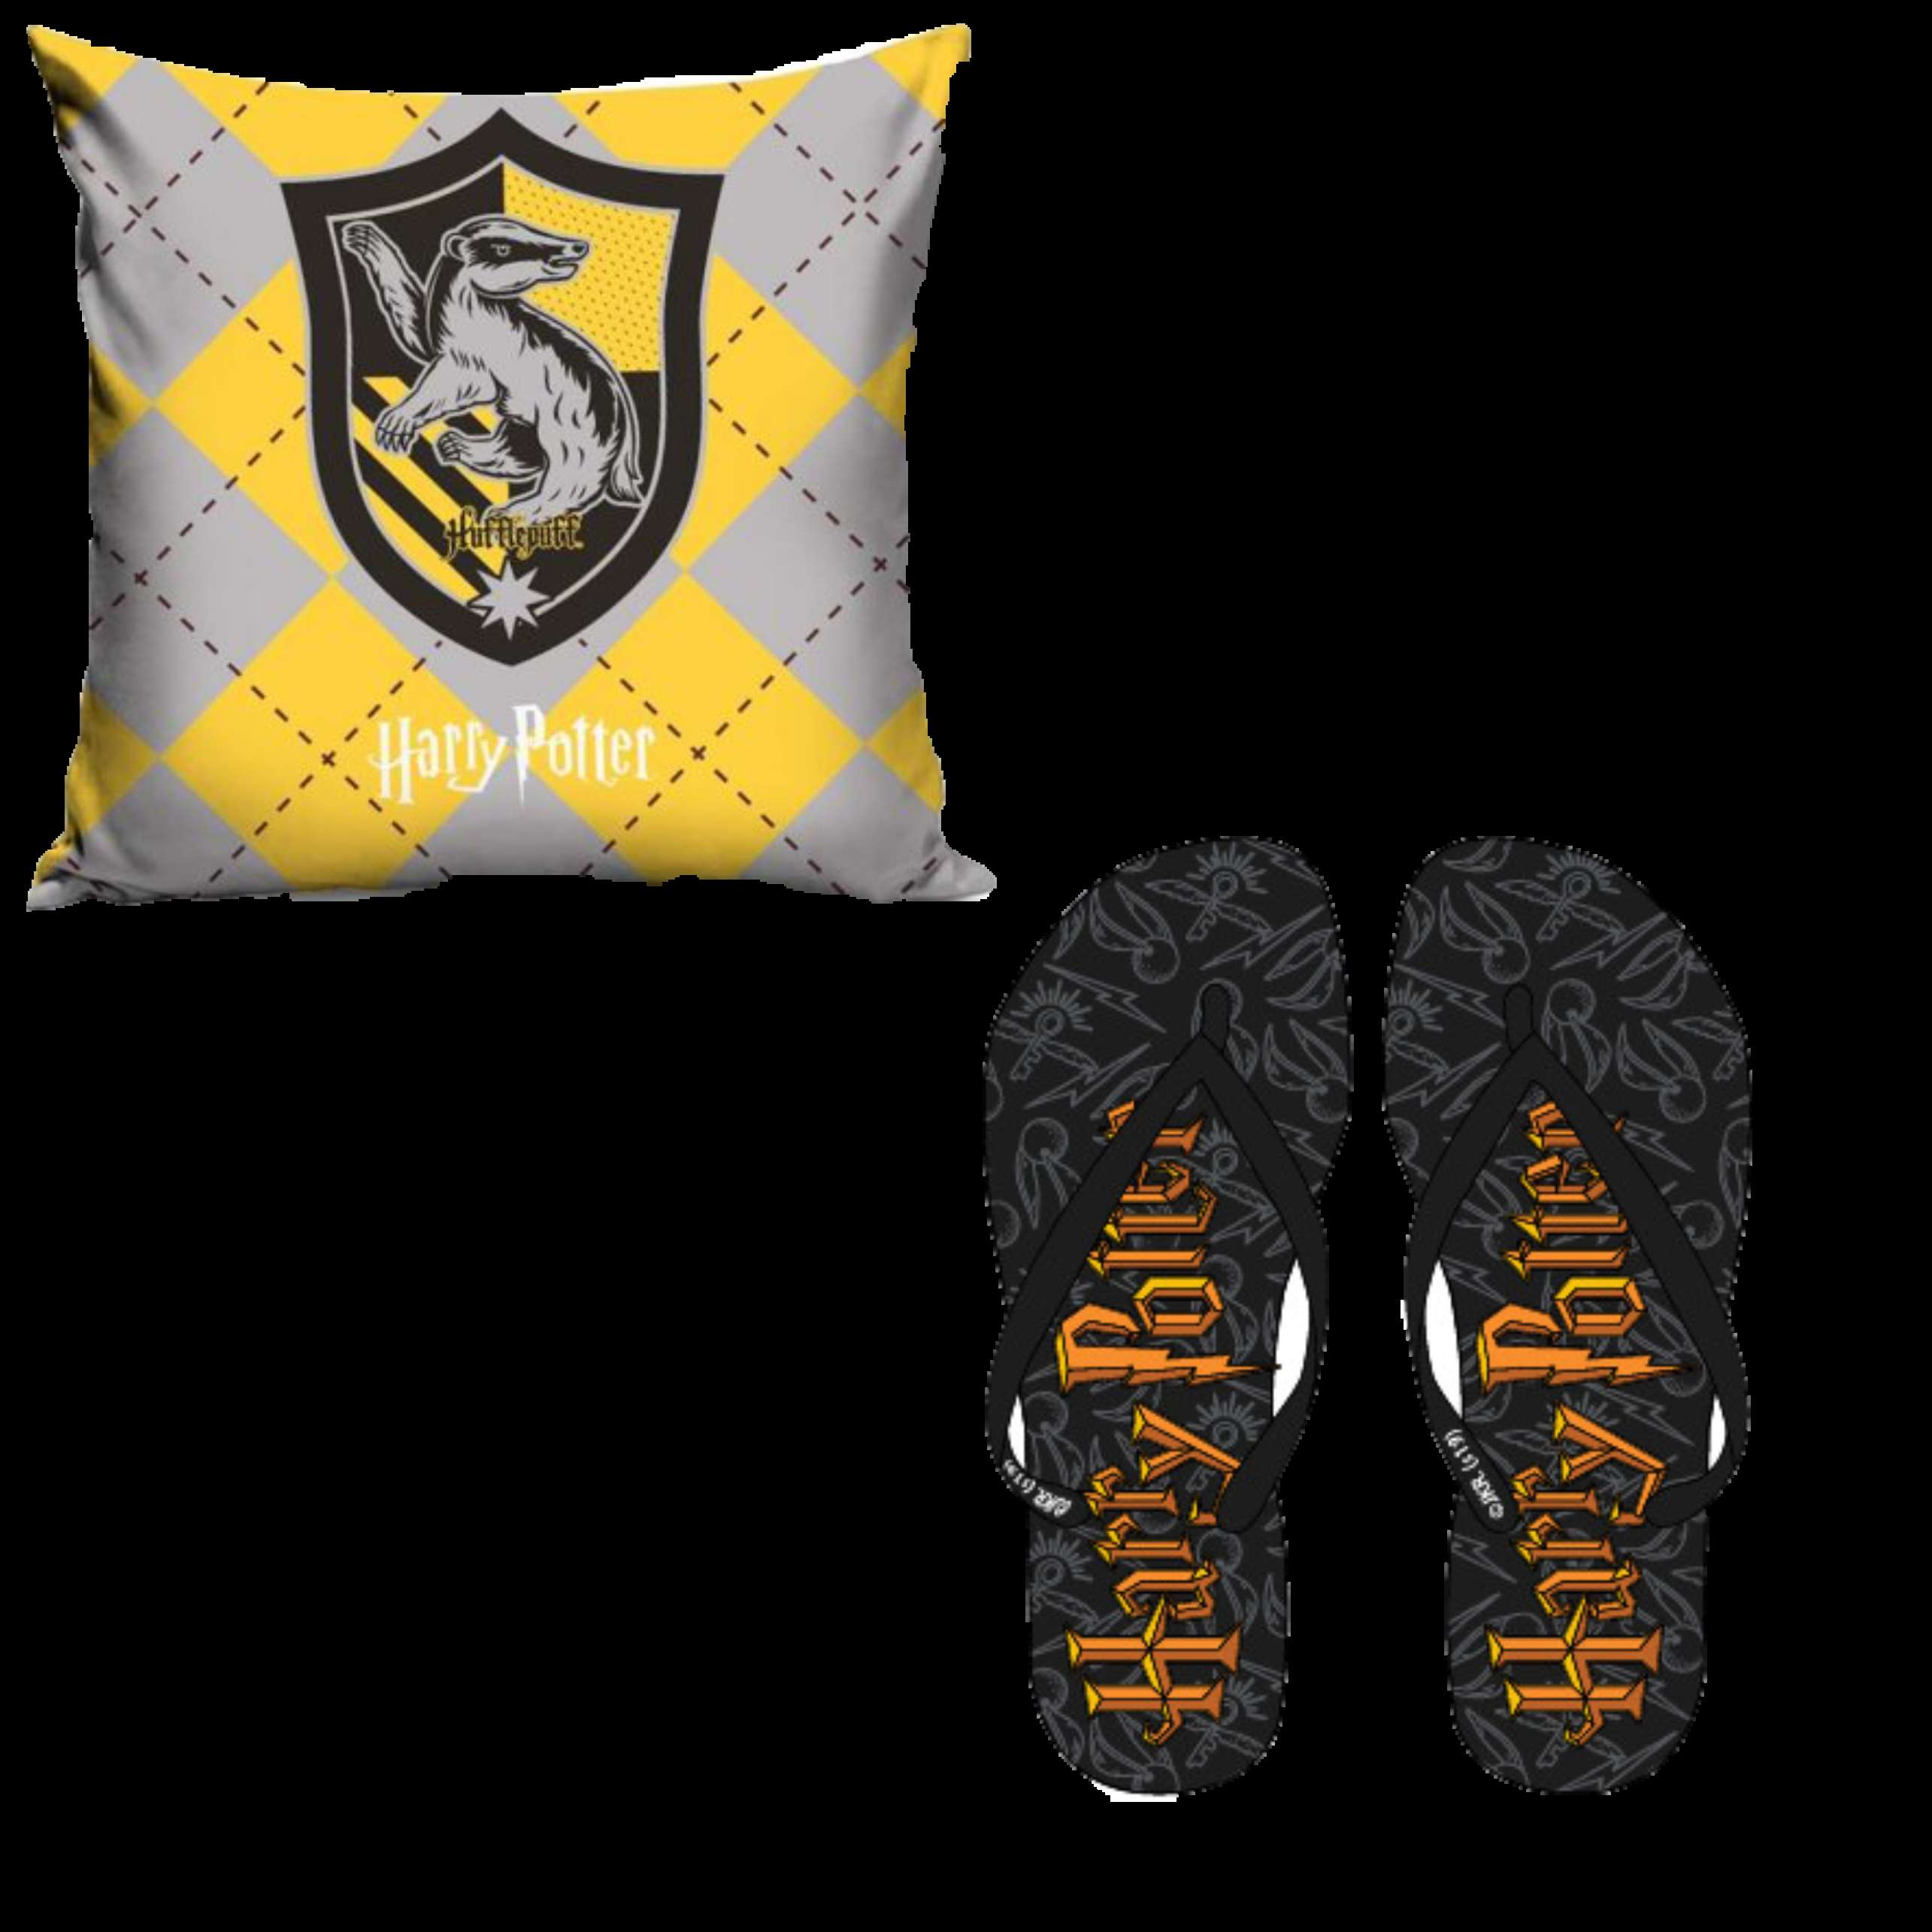 Official Warner Bros Harry Potter Hufflepuff Pillow Case And Flip Flops